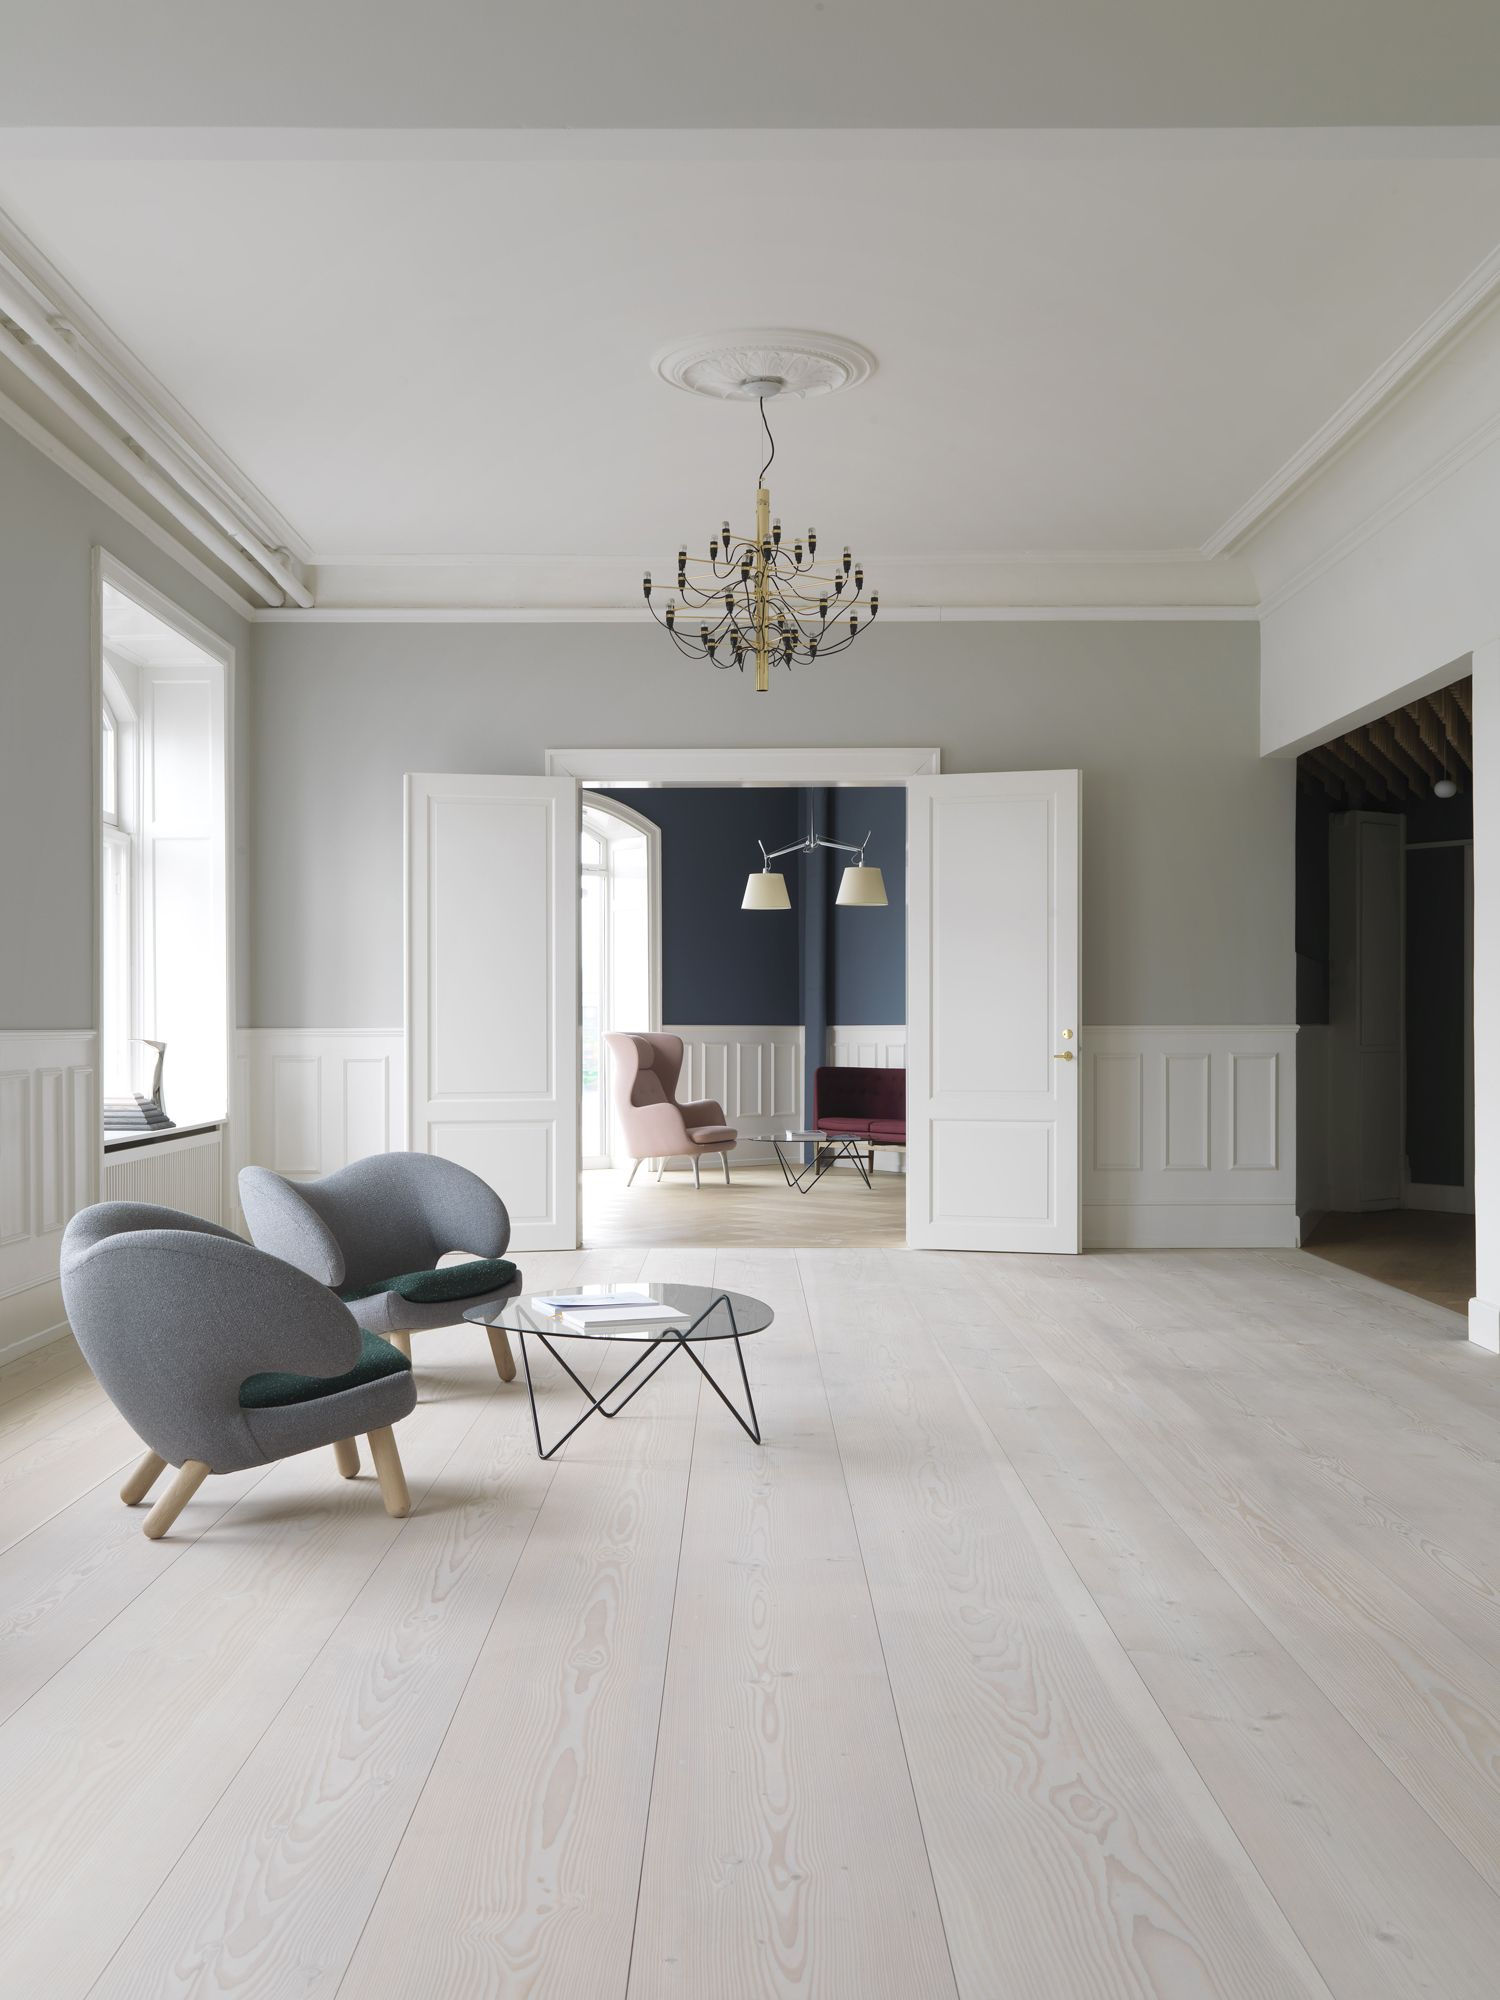 Dinesen's showroom. A nice interior with a white painted